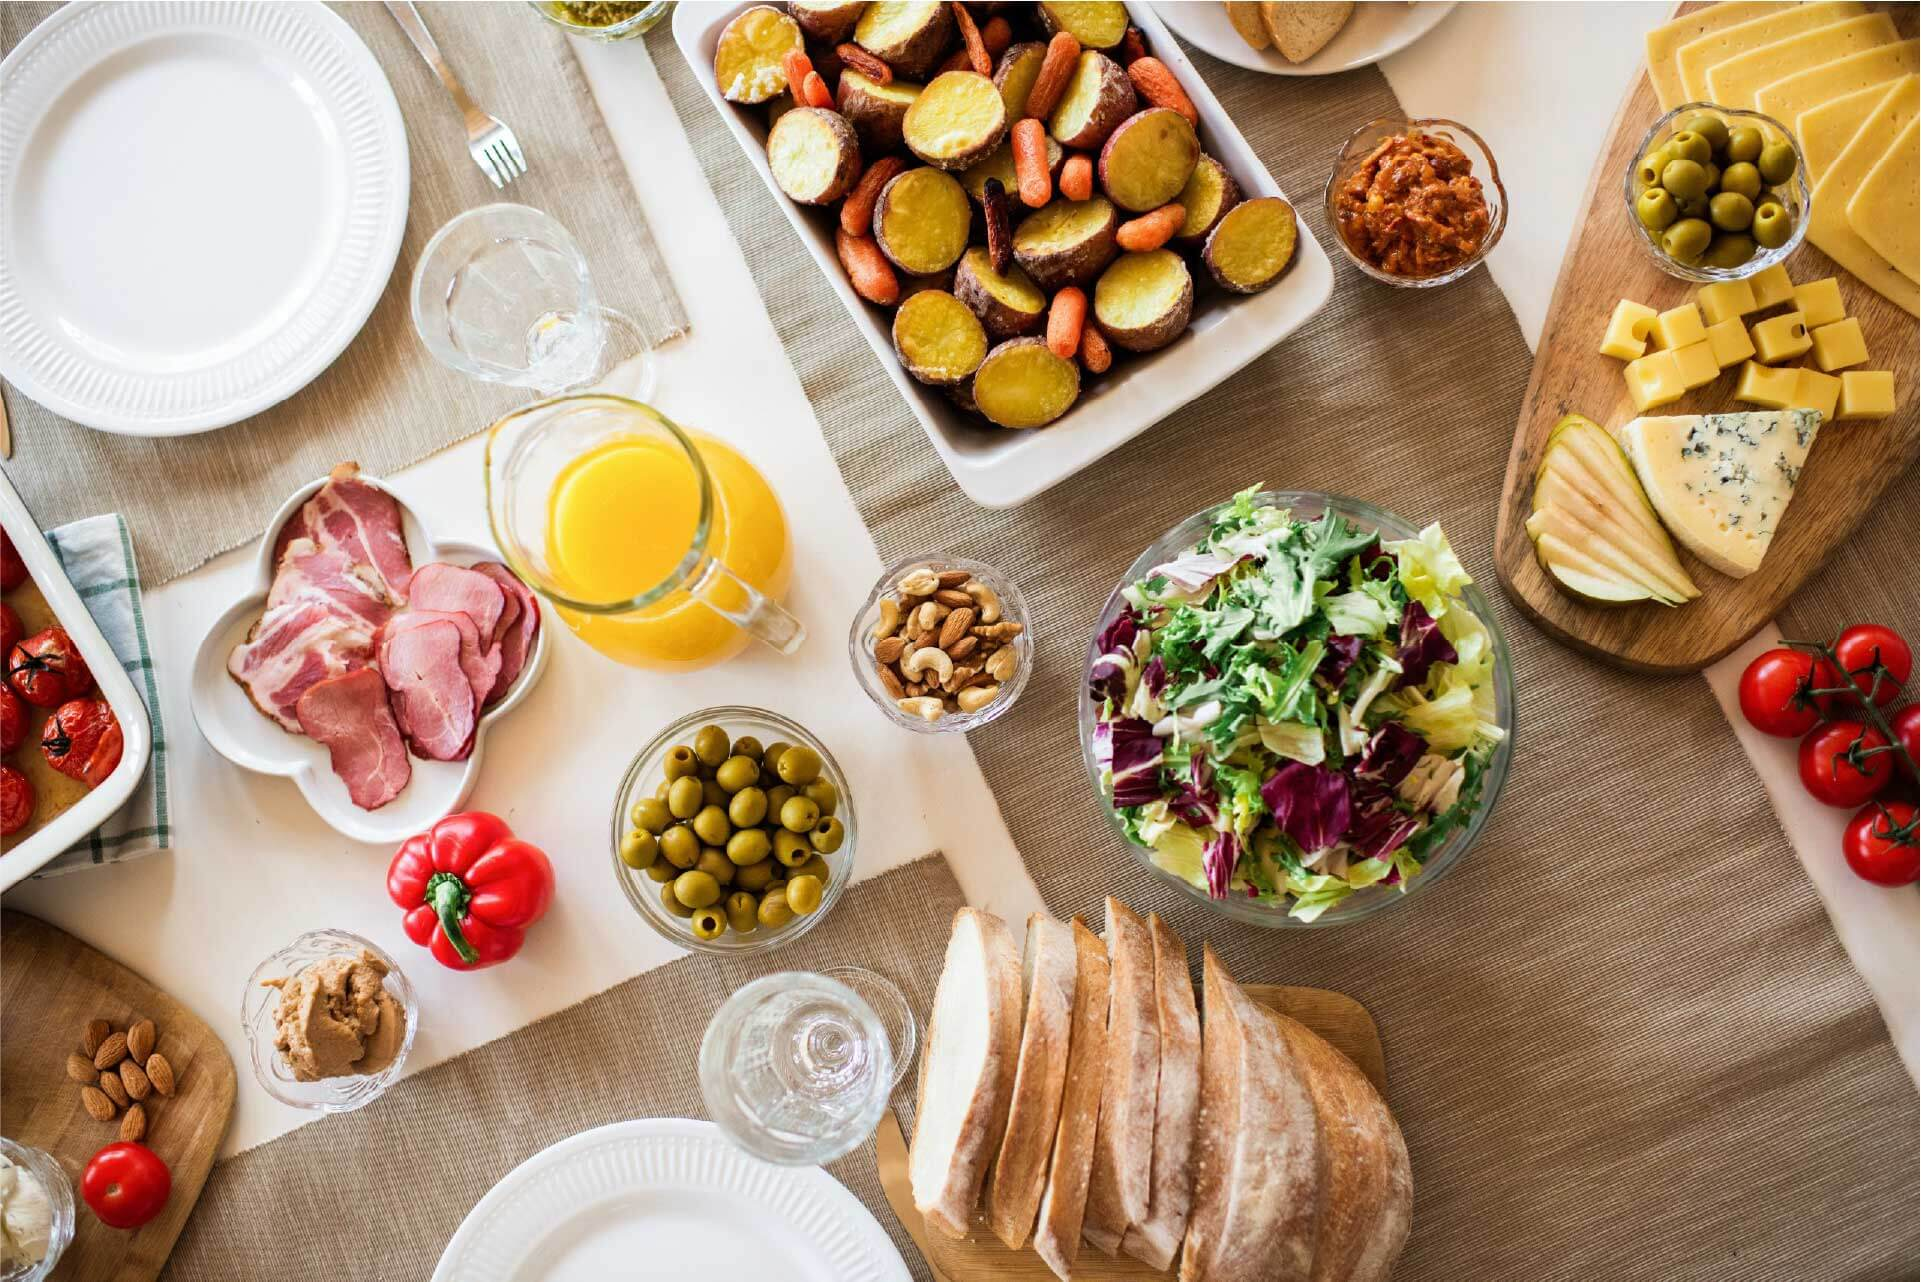 A table full of healthy looking food